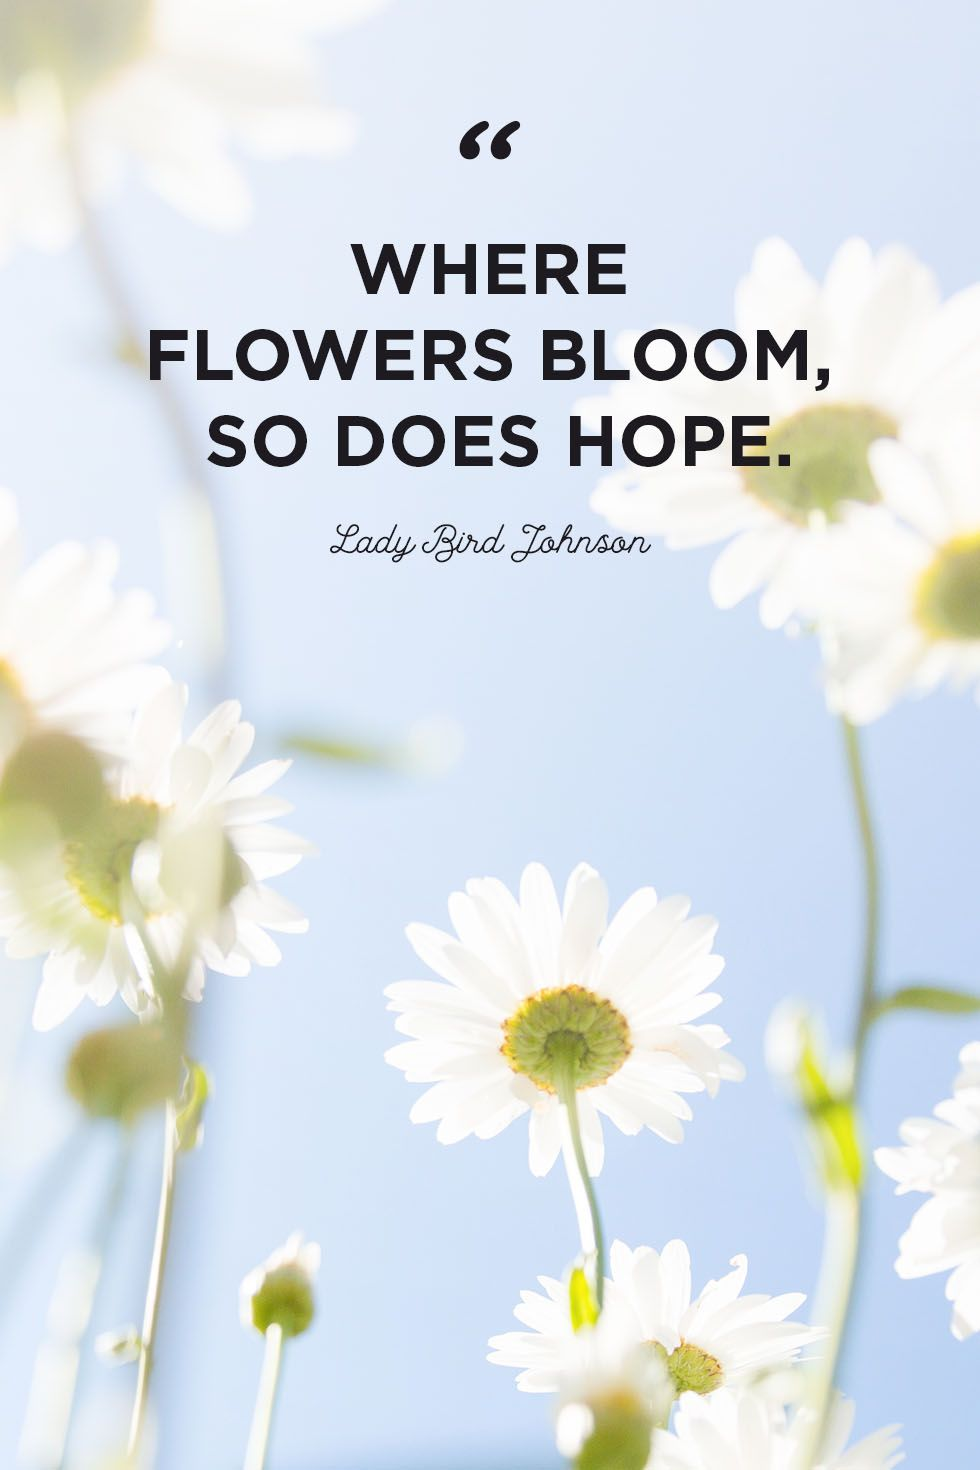 30 Inspirational Flower Quotes - Cute Flower Sayings About Life and Love 5fb9ee8ecef